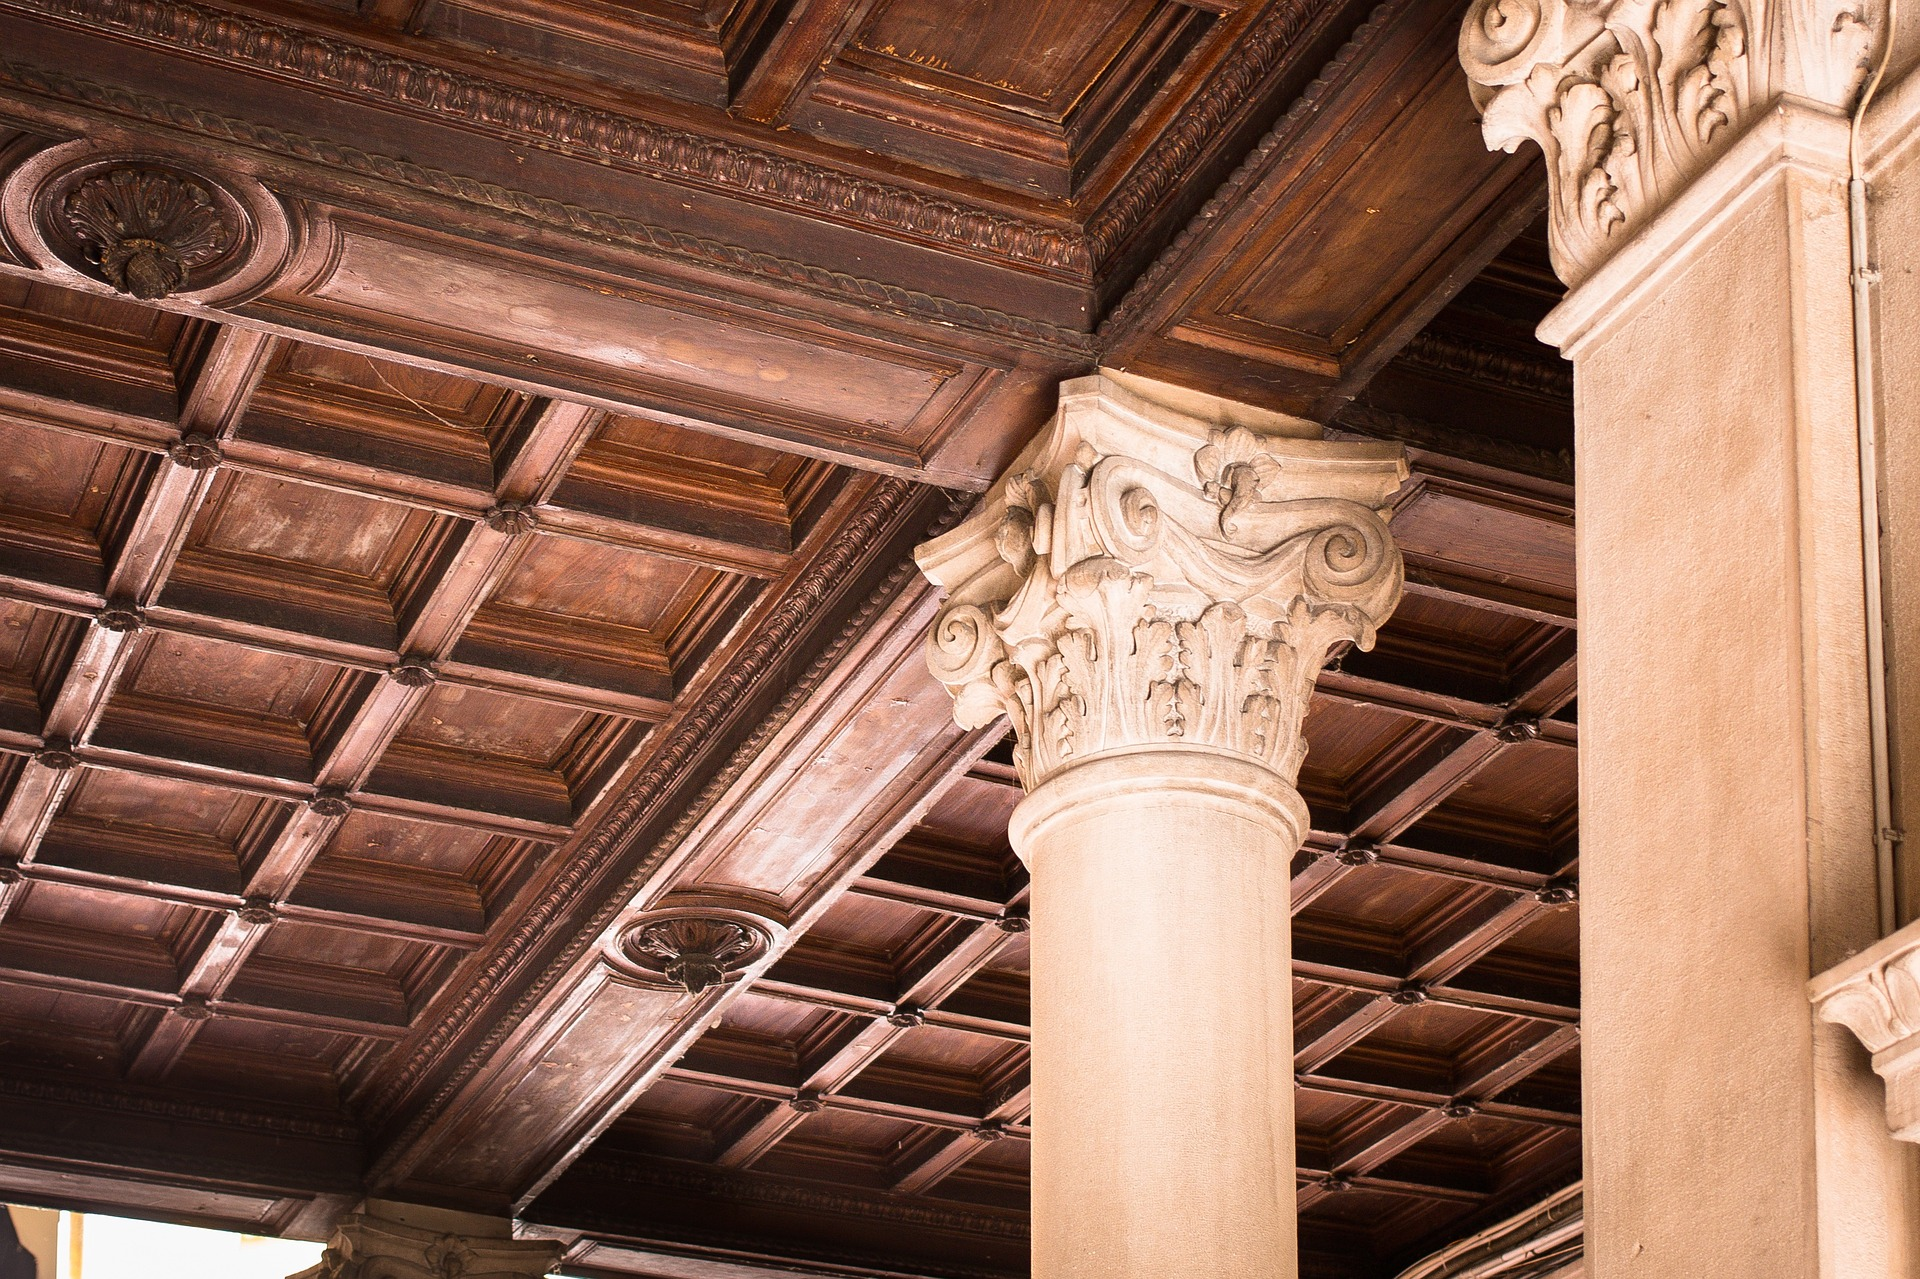 Wooden Ceiling, Architecture, Ceiling, Construction, Design, HQ Photo